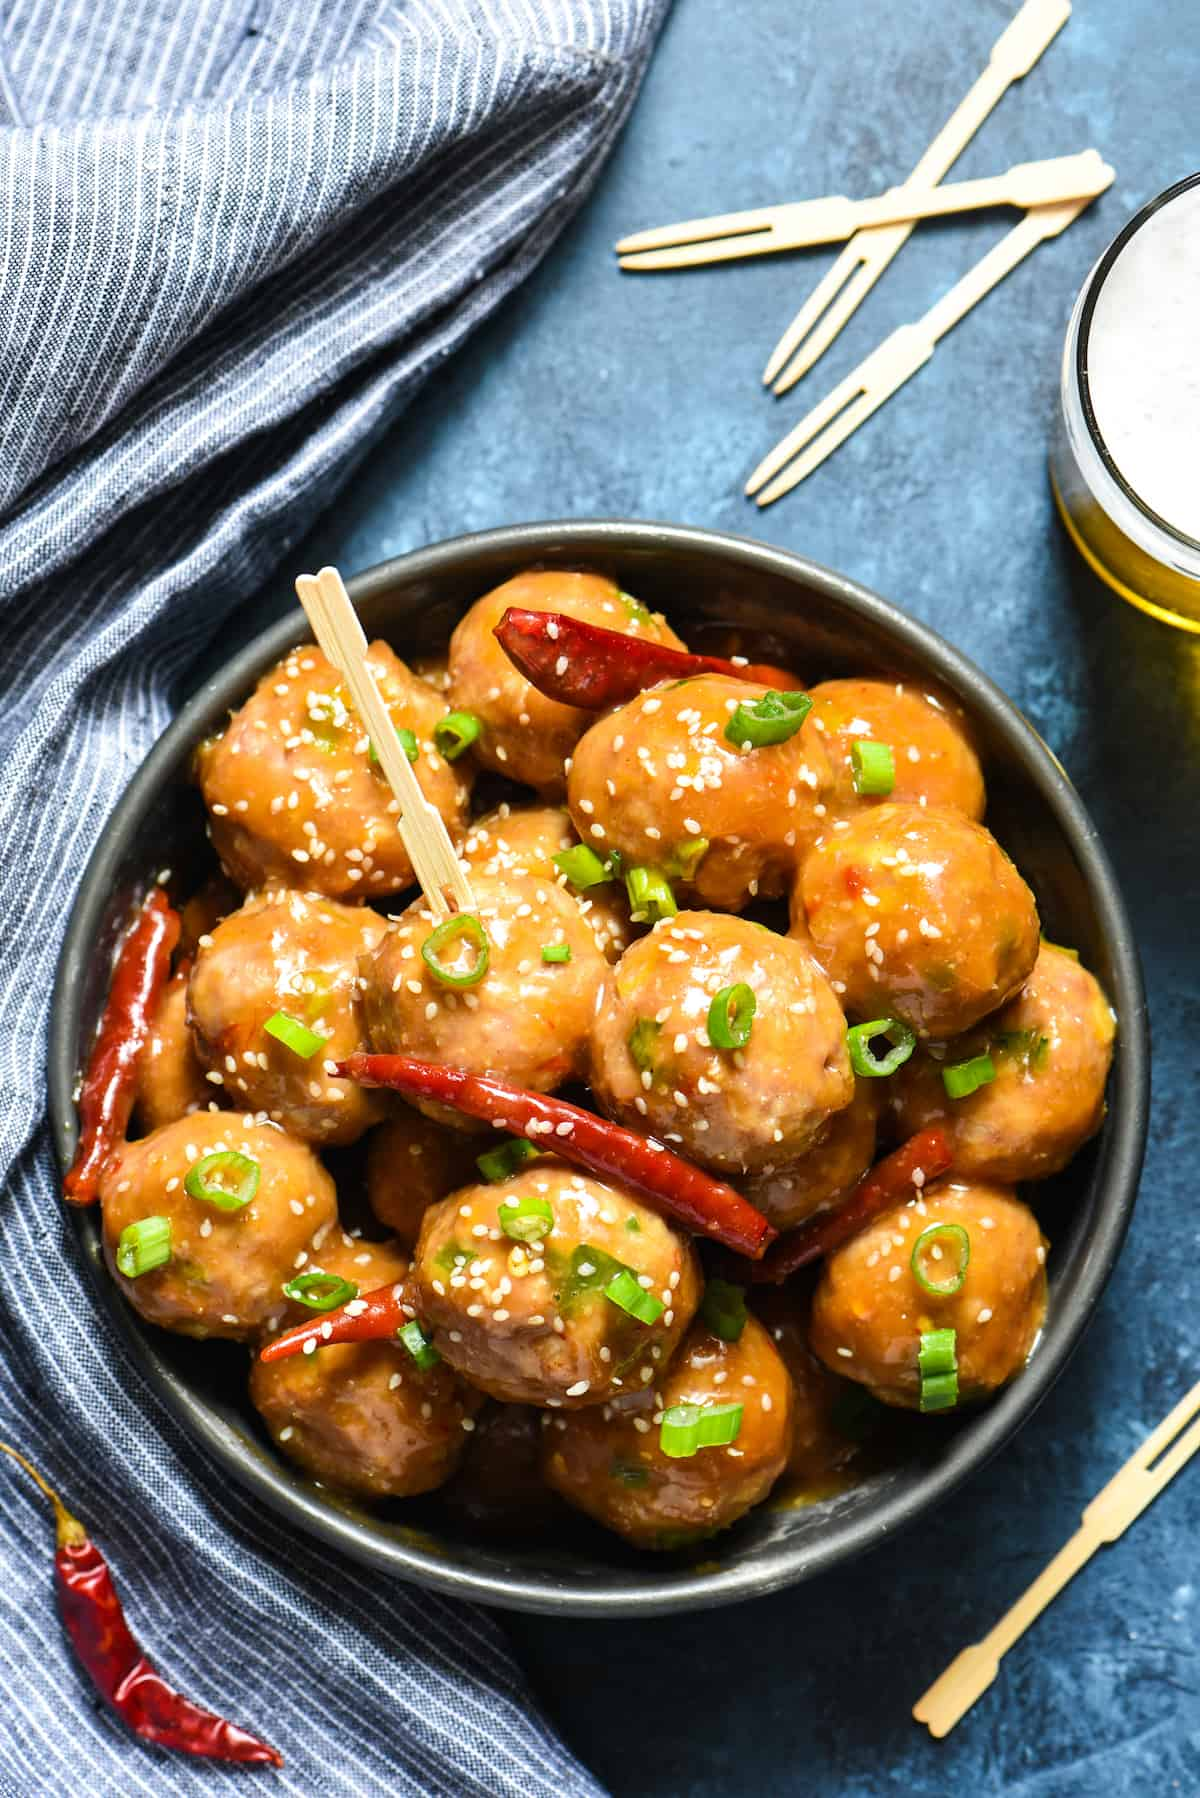 General Tso's Meatballs - Pork meatballs are slathered in tasty General Tso's sauce in this fun party recipe! | foxeslovelemons.com